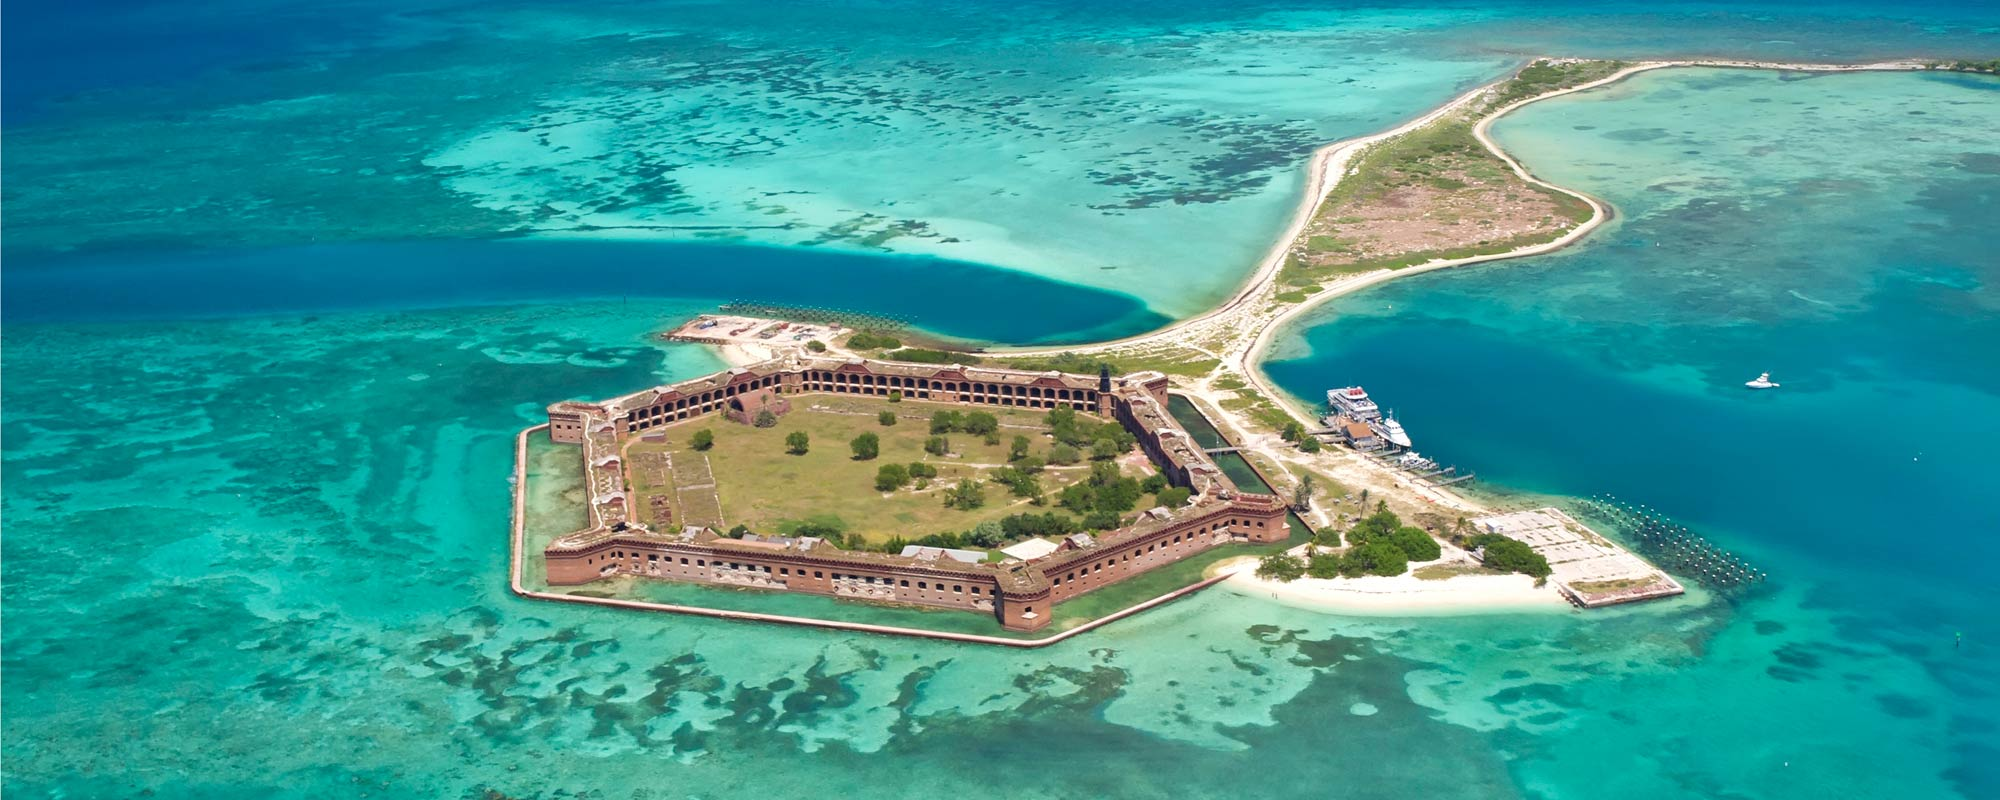 Go Exploring Travel - Dry Tortugas National Park